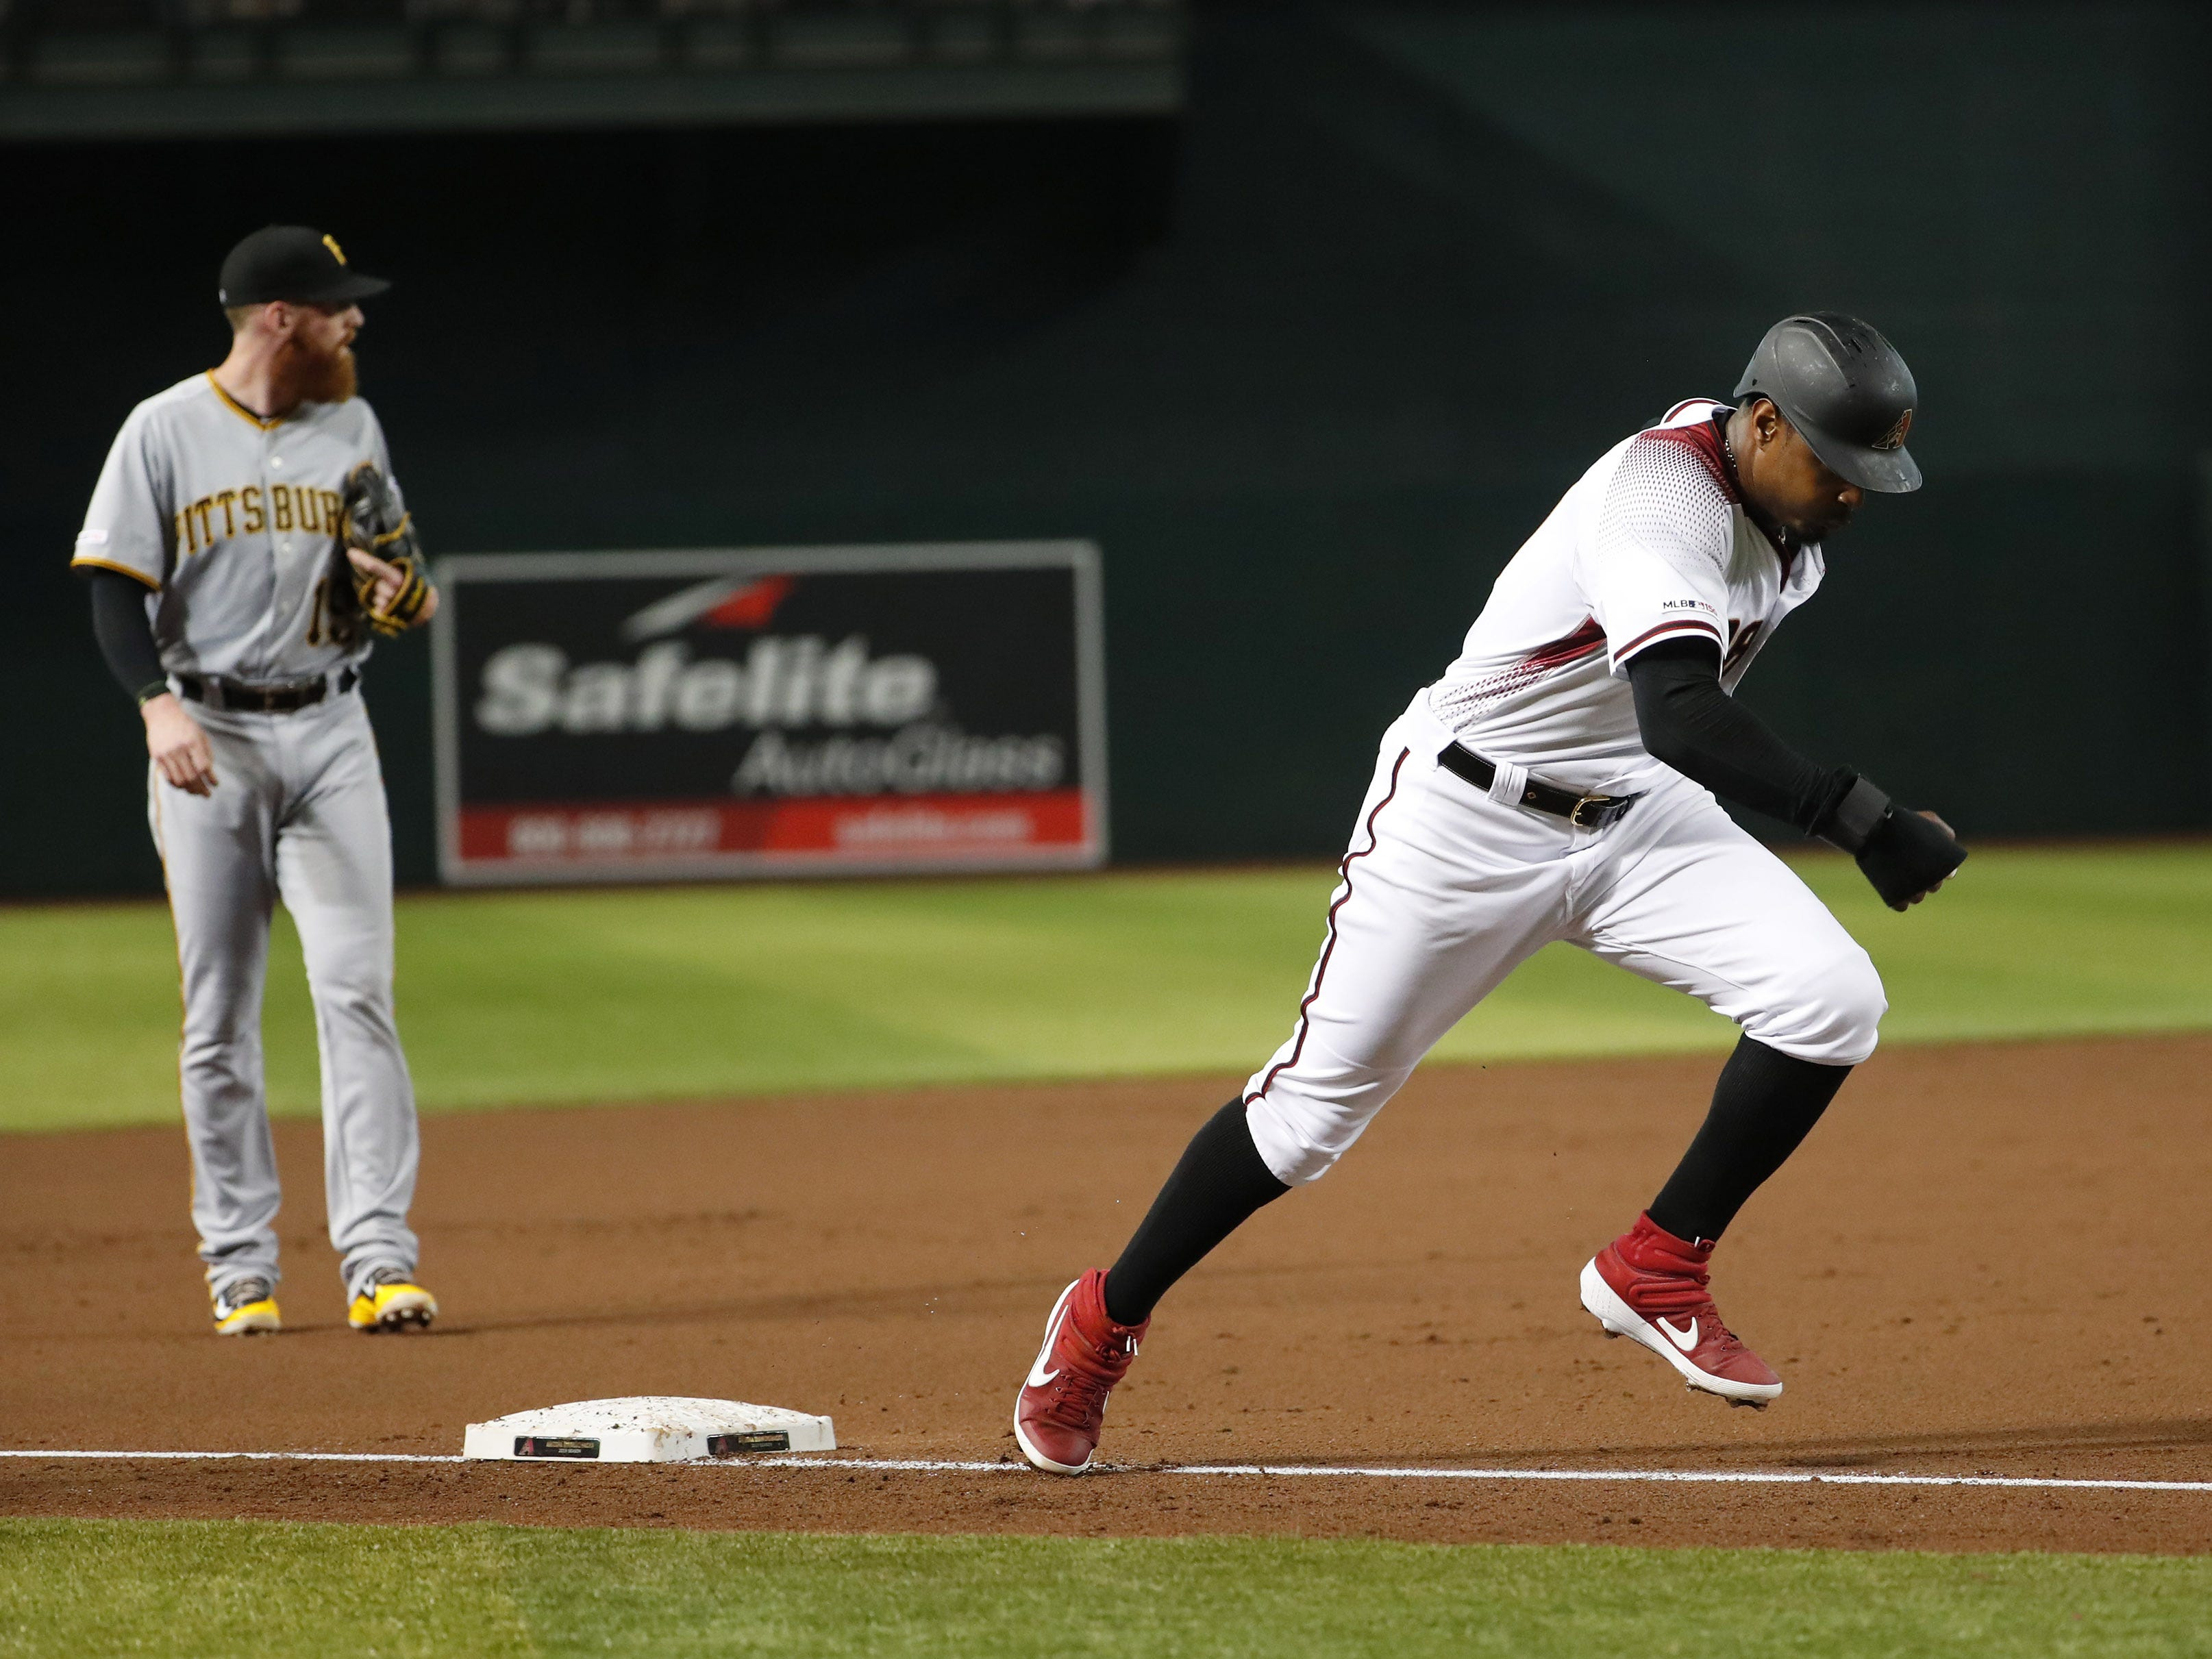 Arizona Diamondbacks right fielder Adam Jones (10) tags up from third base to score against the Pittsburgh Pirates during the first inning. at Chase Field in Phoenix, Ariz. May 15, 2019.